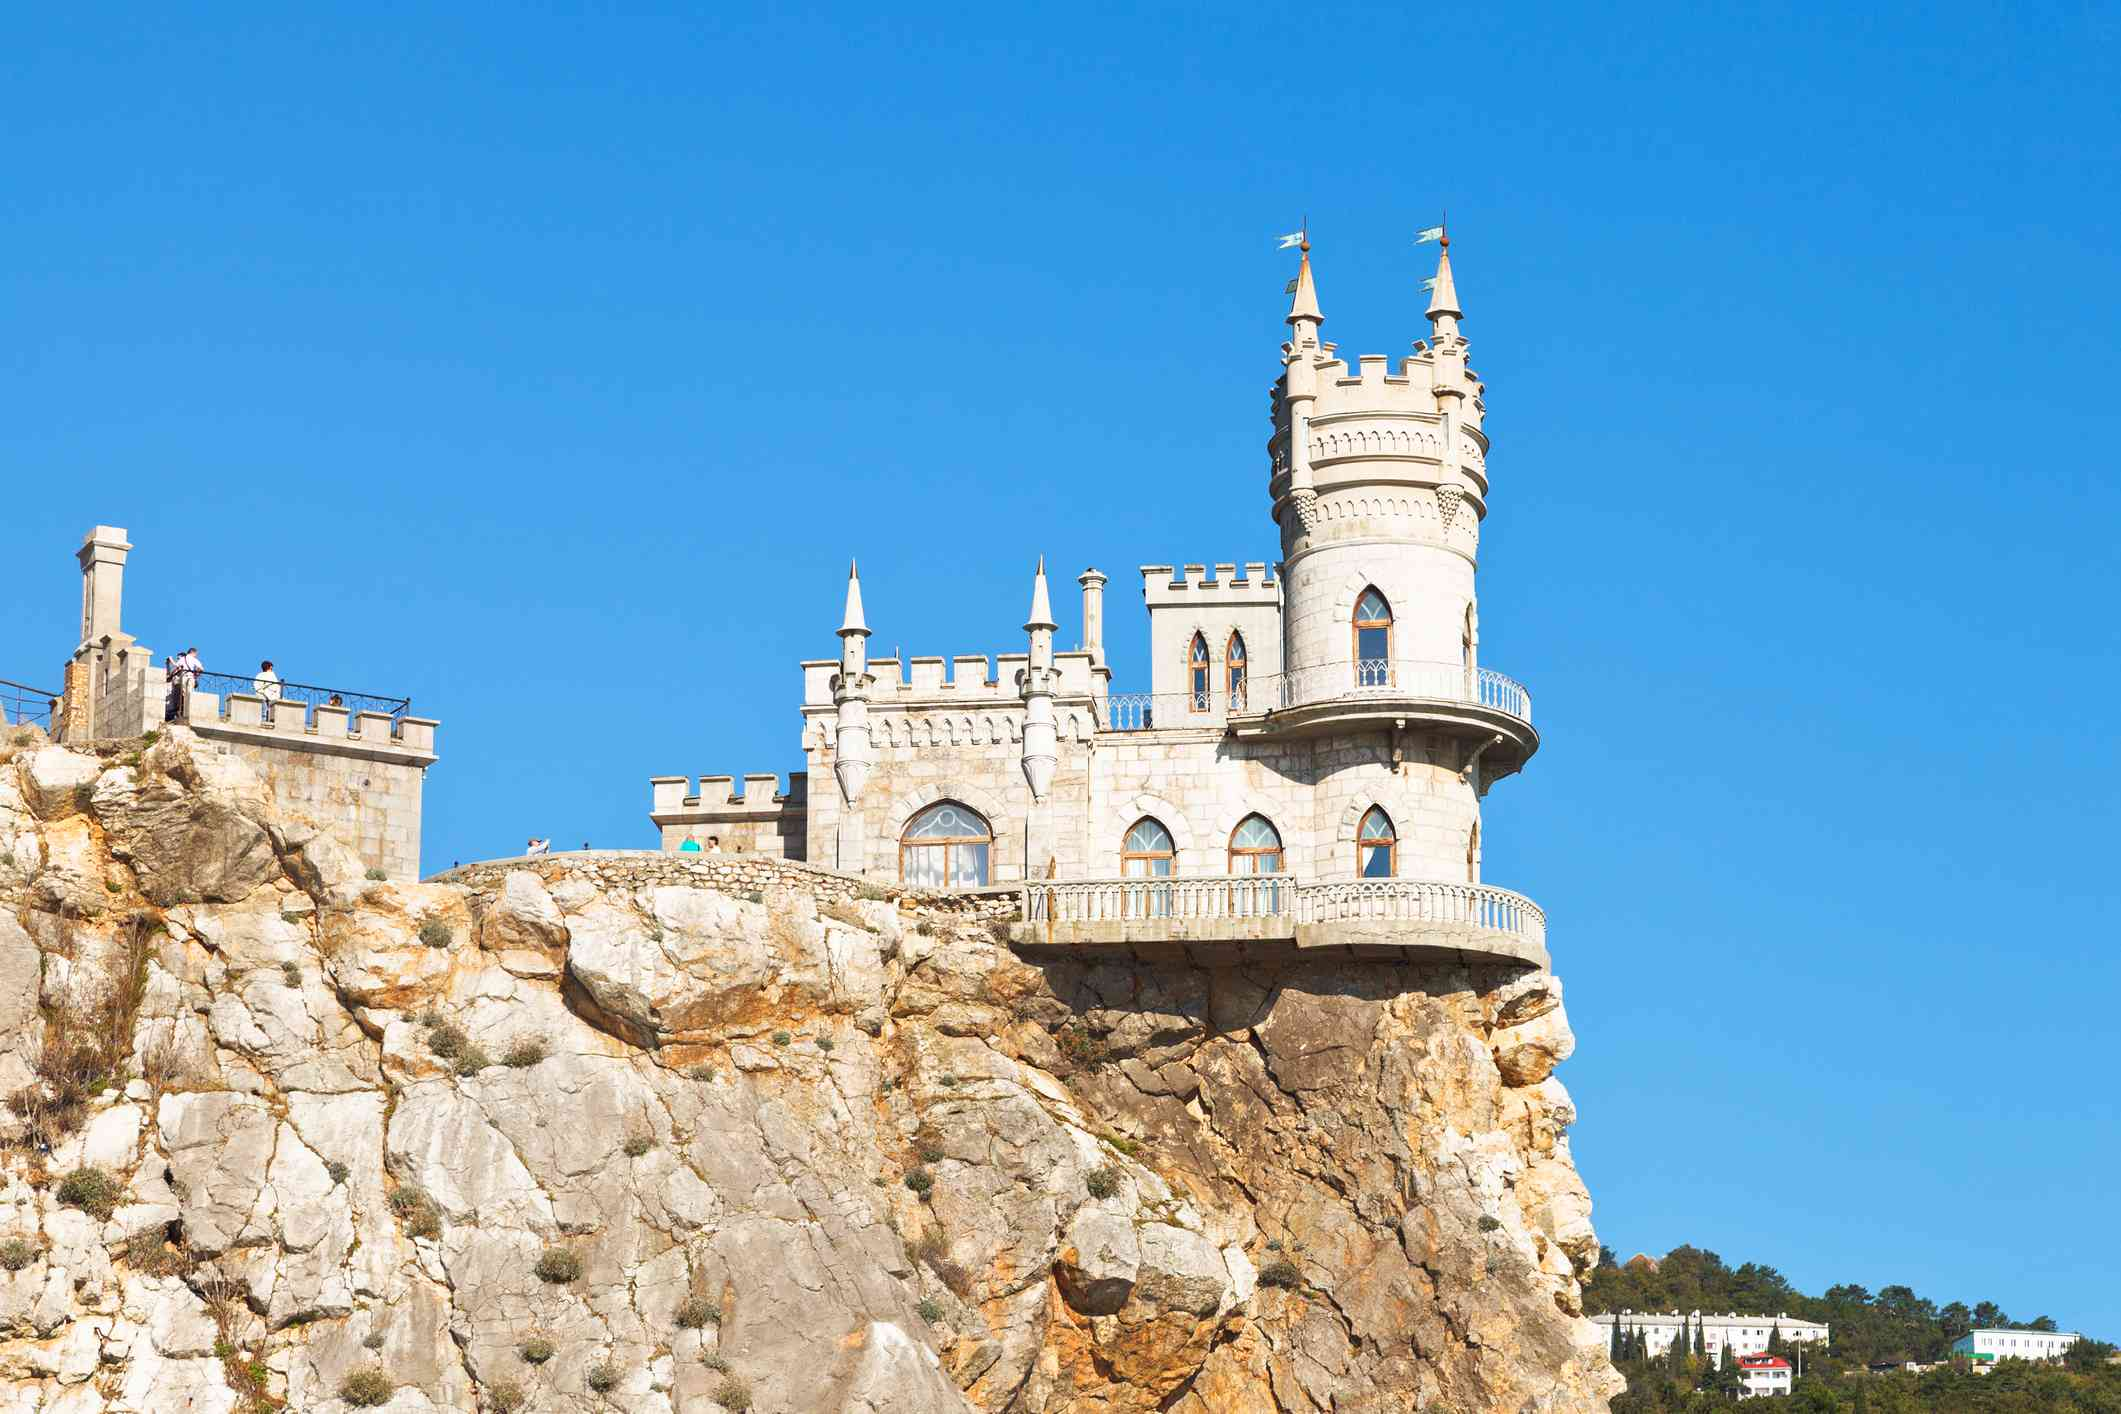 Swallow's Nest castle perched on Aurora Cliff under a clear blue sky